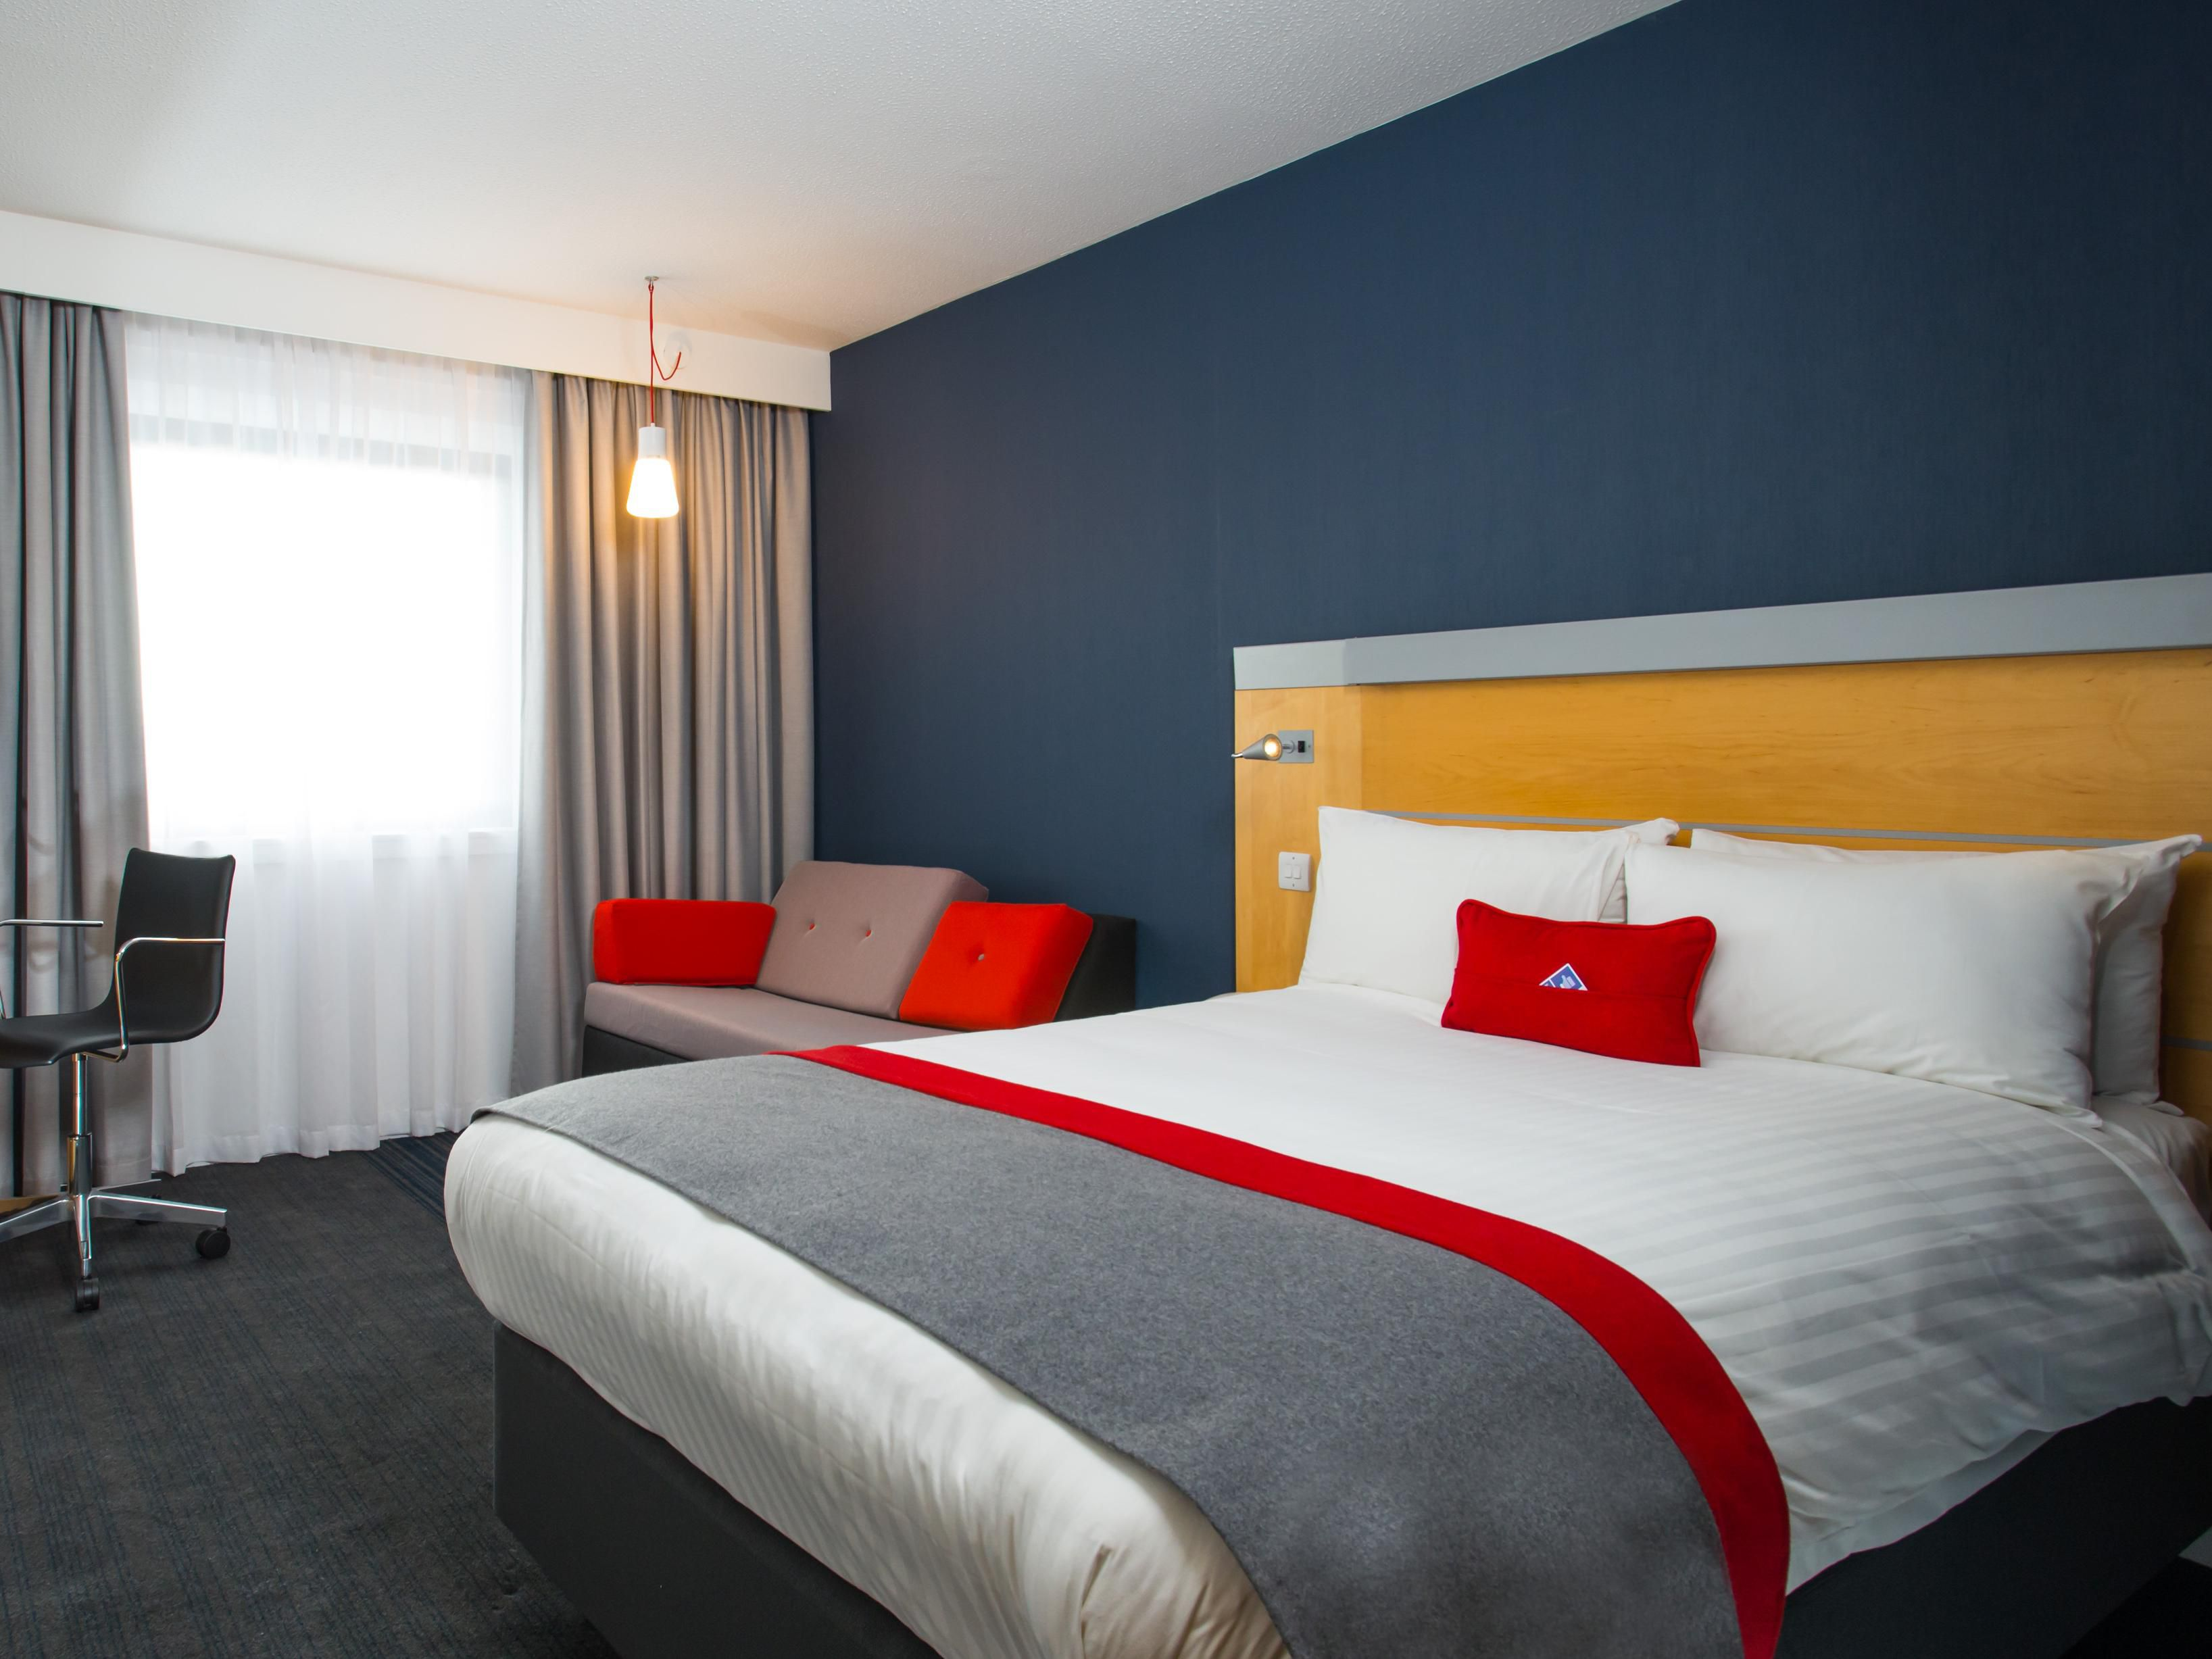 Our newly refurbished rooms are stylish and modern